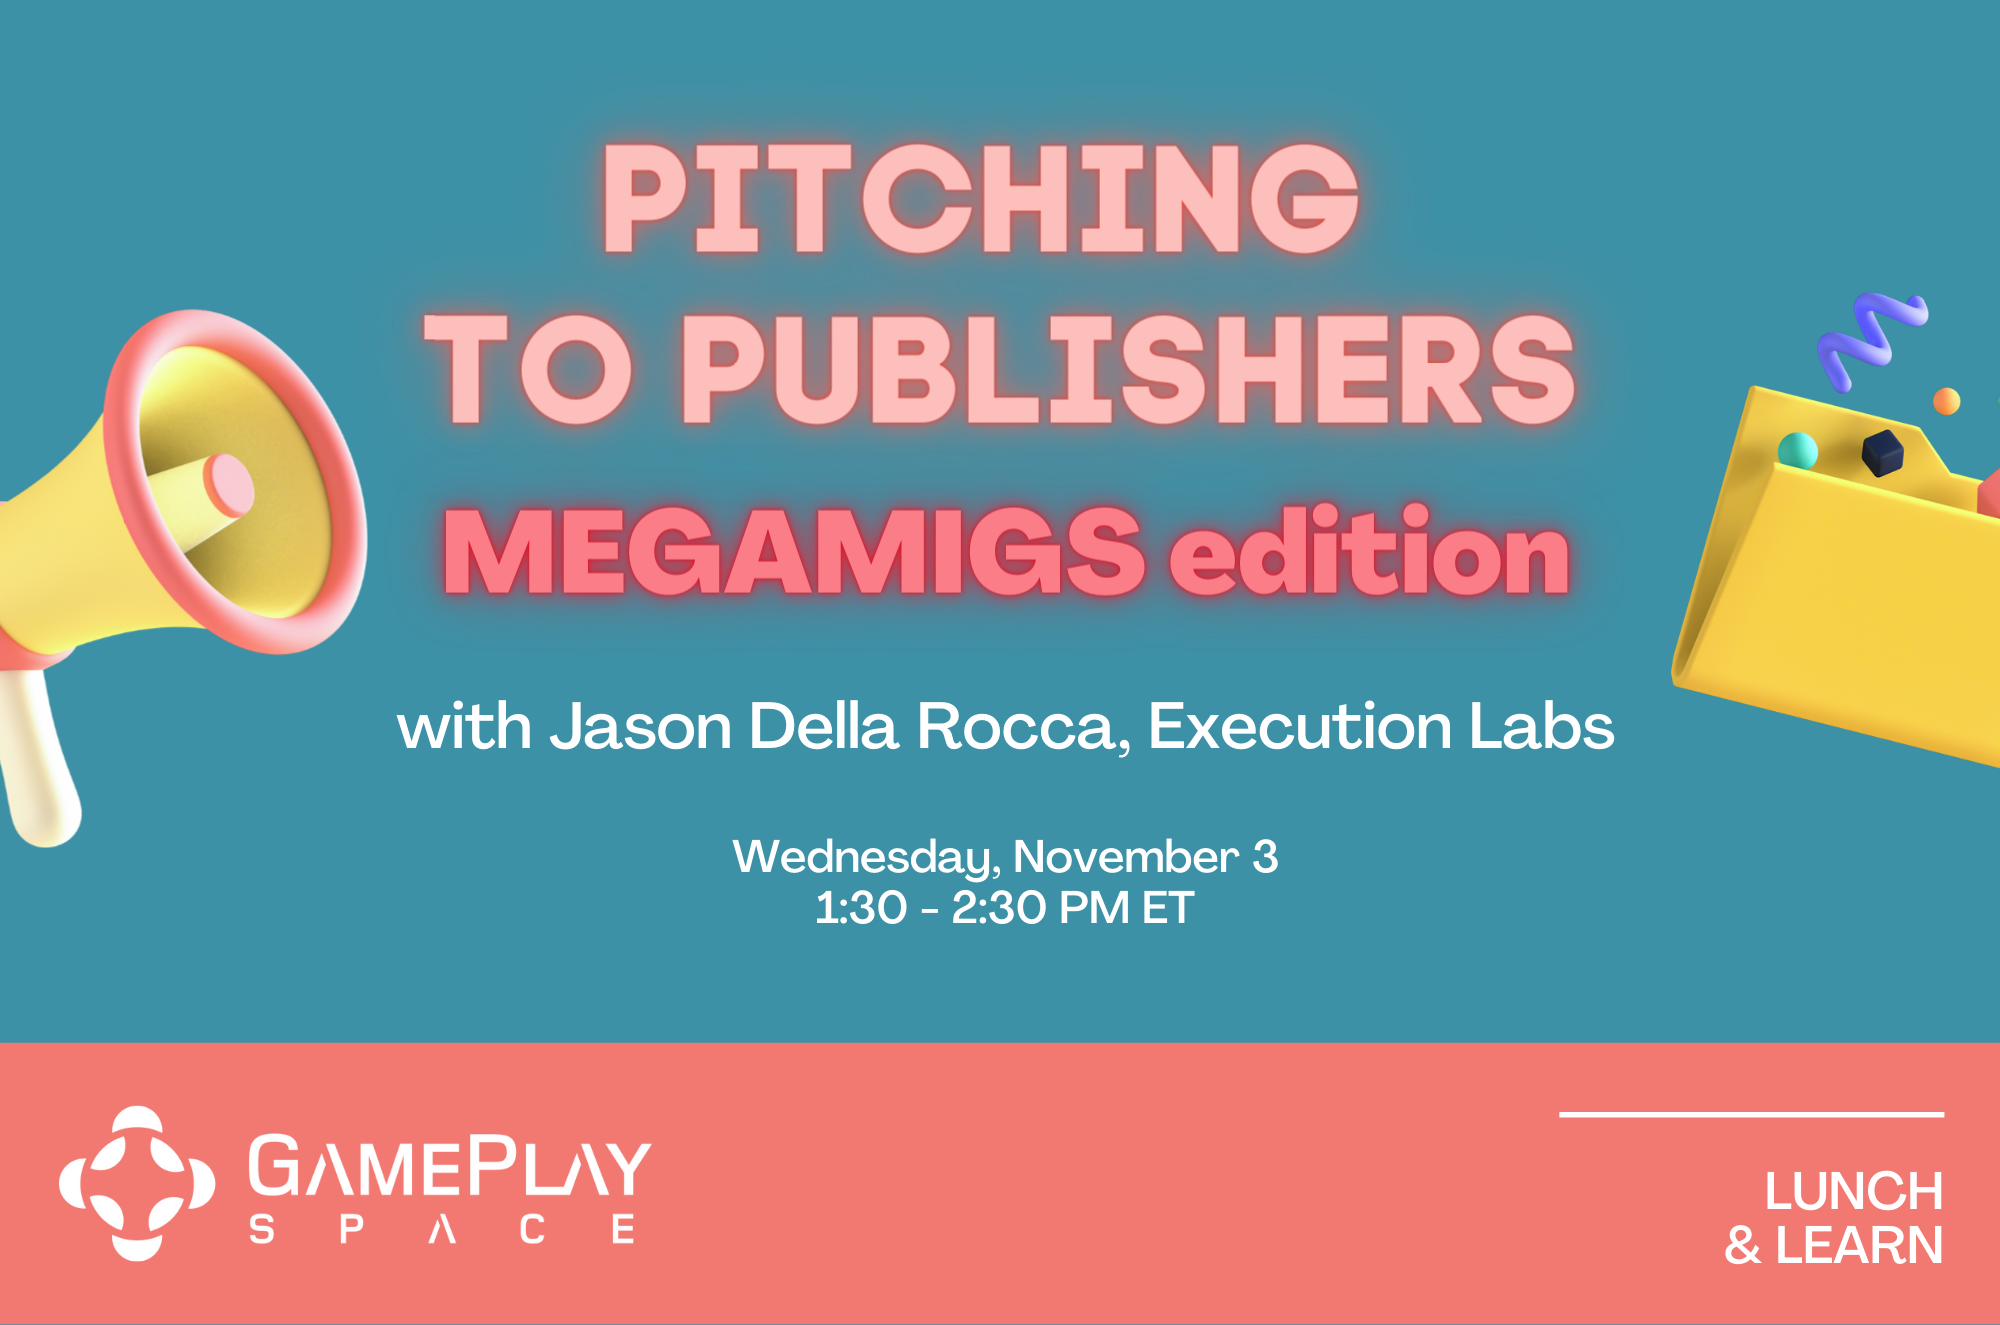 Pitching to Publishers (MEGAMIGS edition)